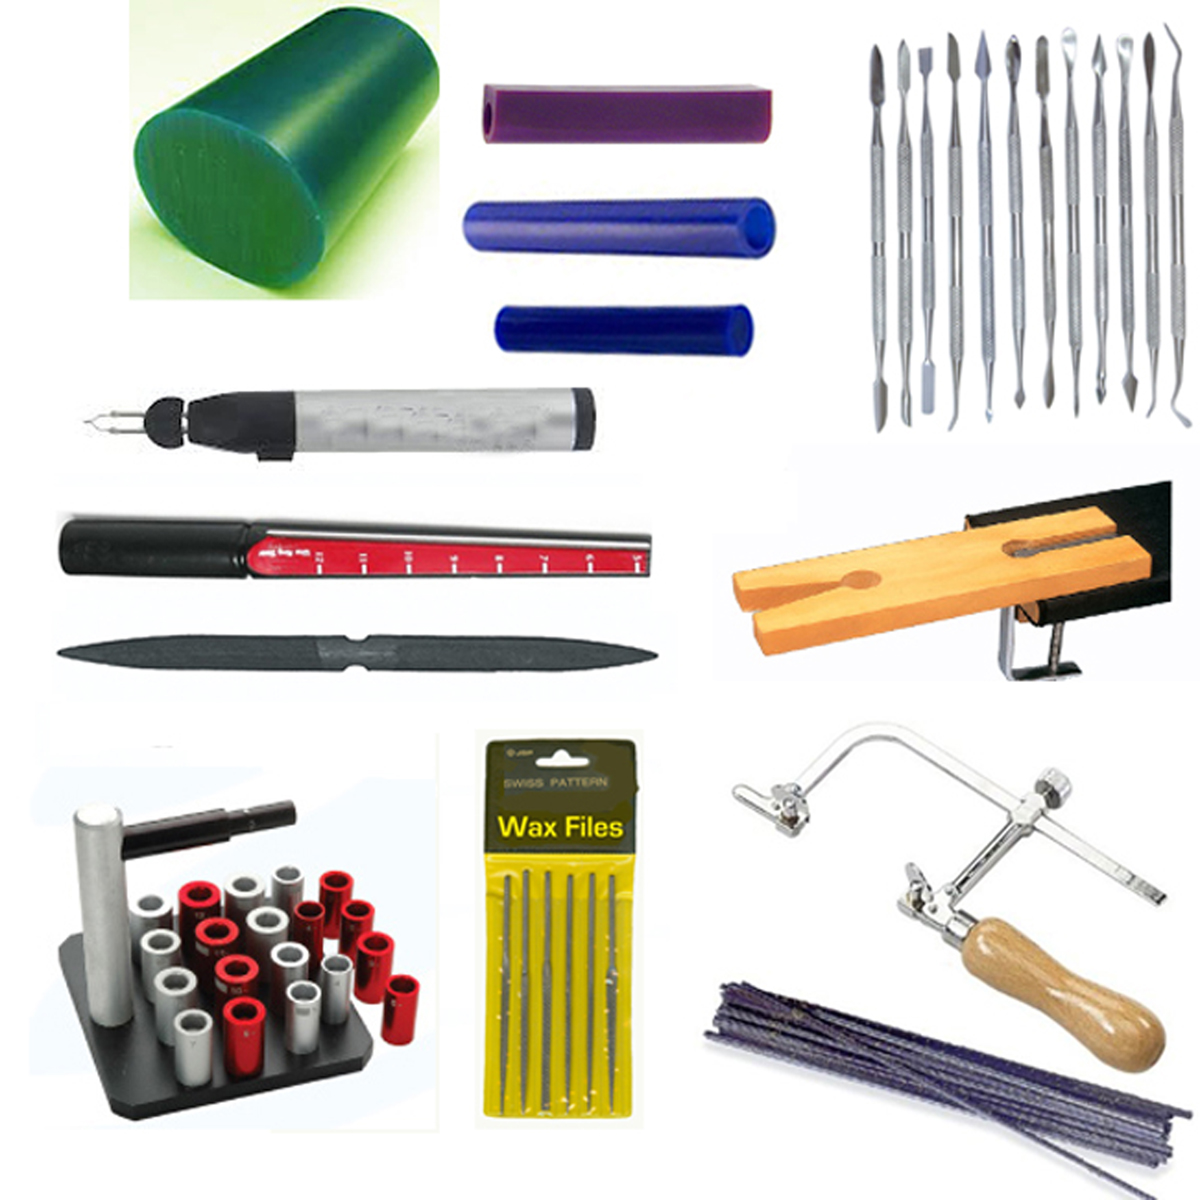 Wholesale Jewelry Tools Jewelry Tools Supplies Jsp Manufactures And Wholesales